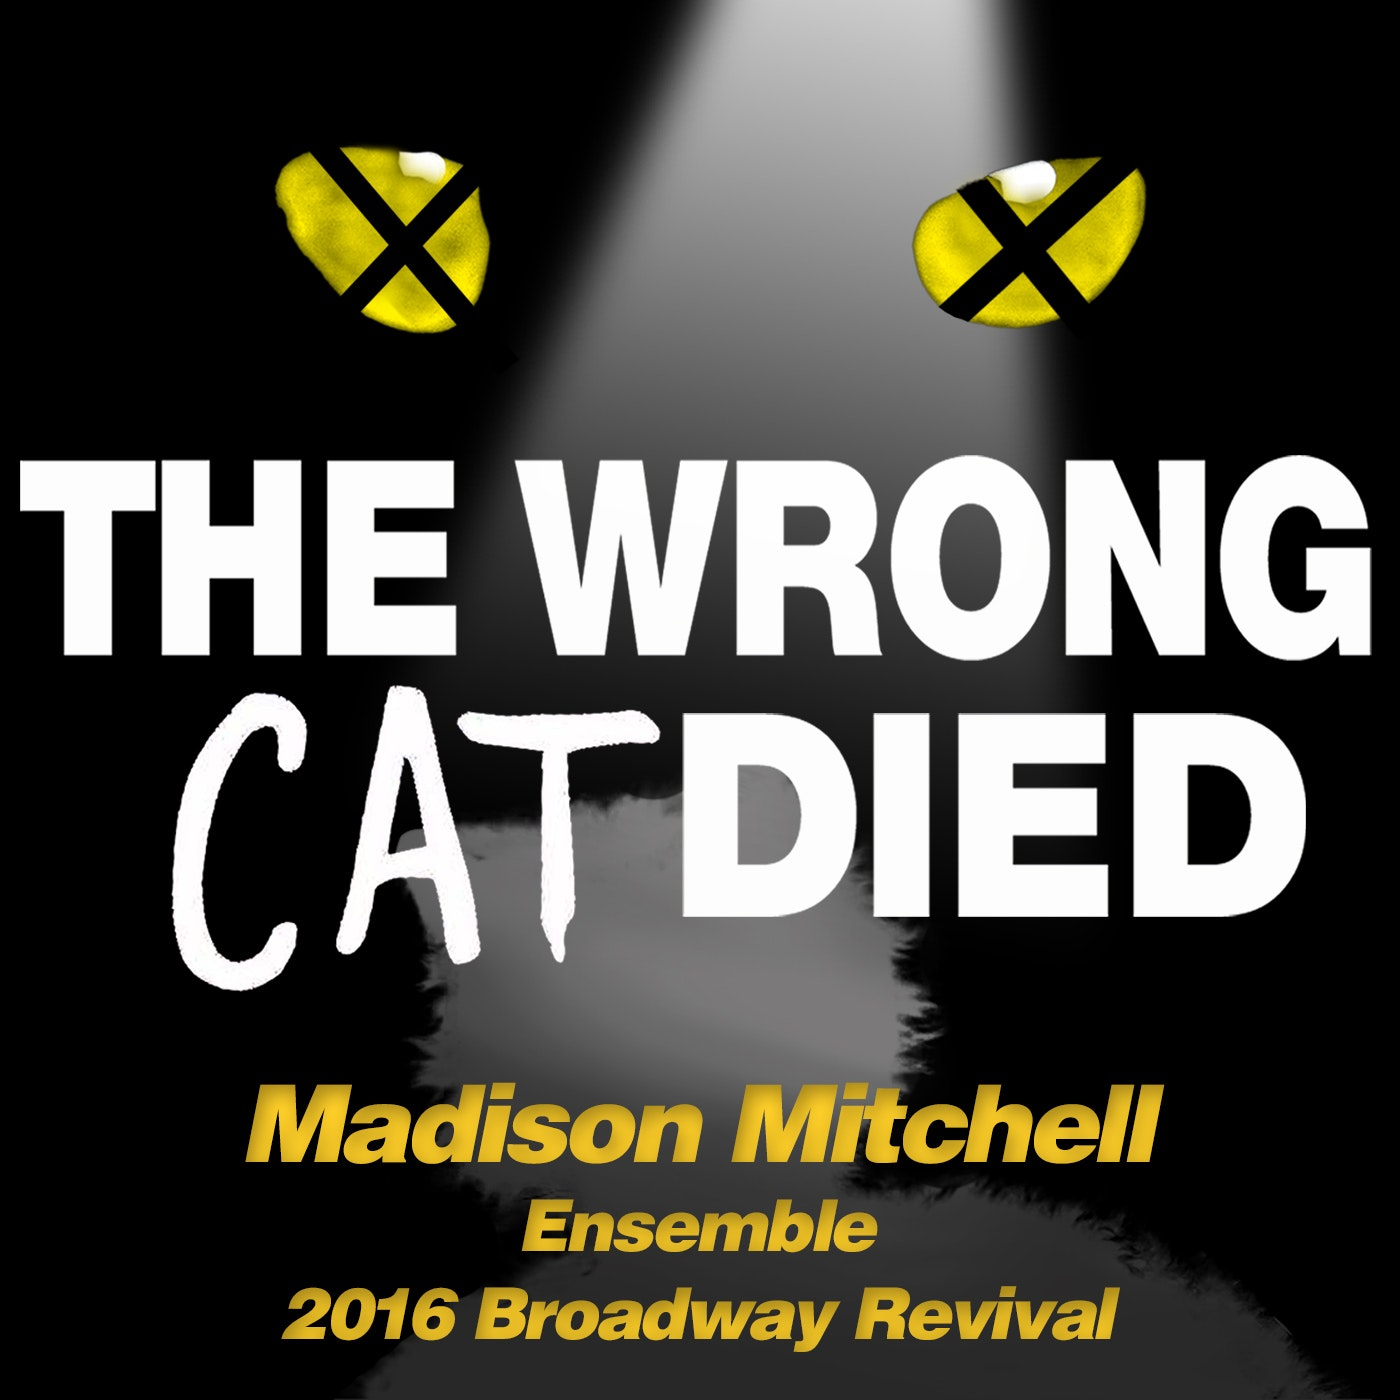 Ep39 - Madison Mitchell, Ensemble from the 2016 Broadway Revival